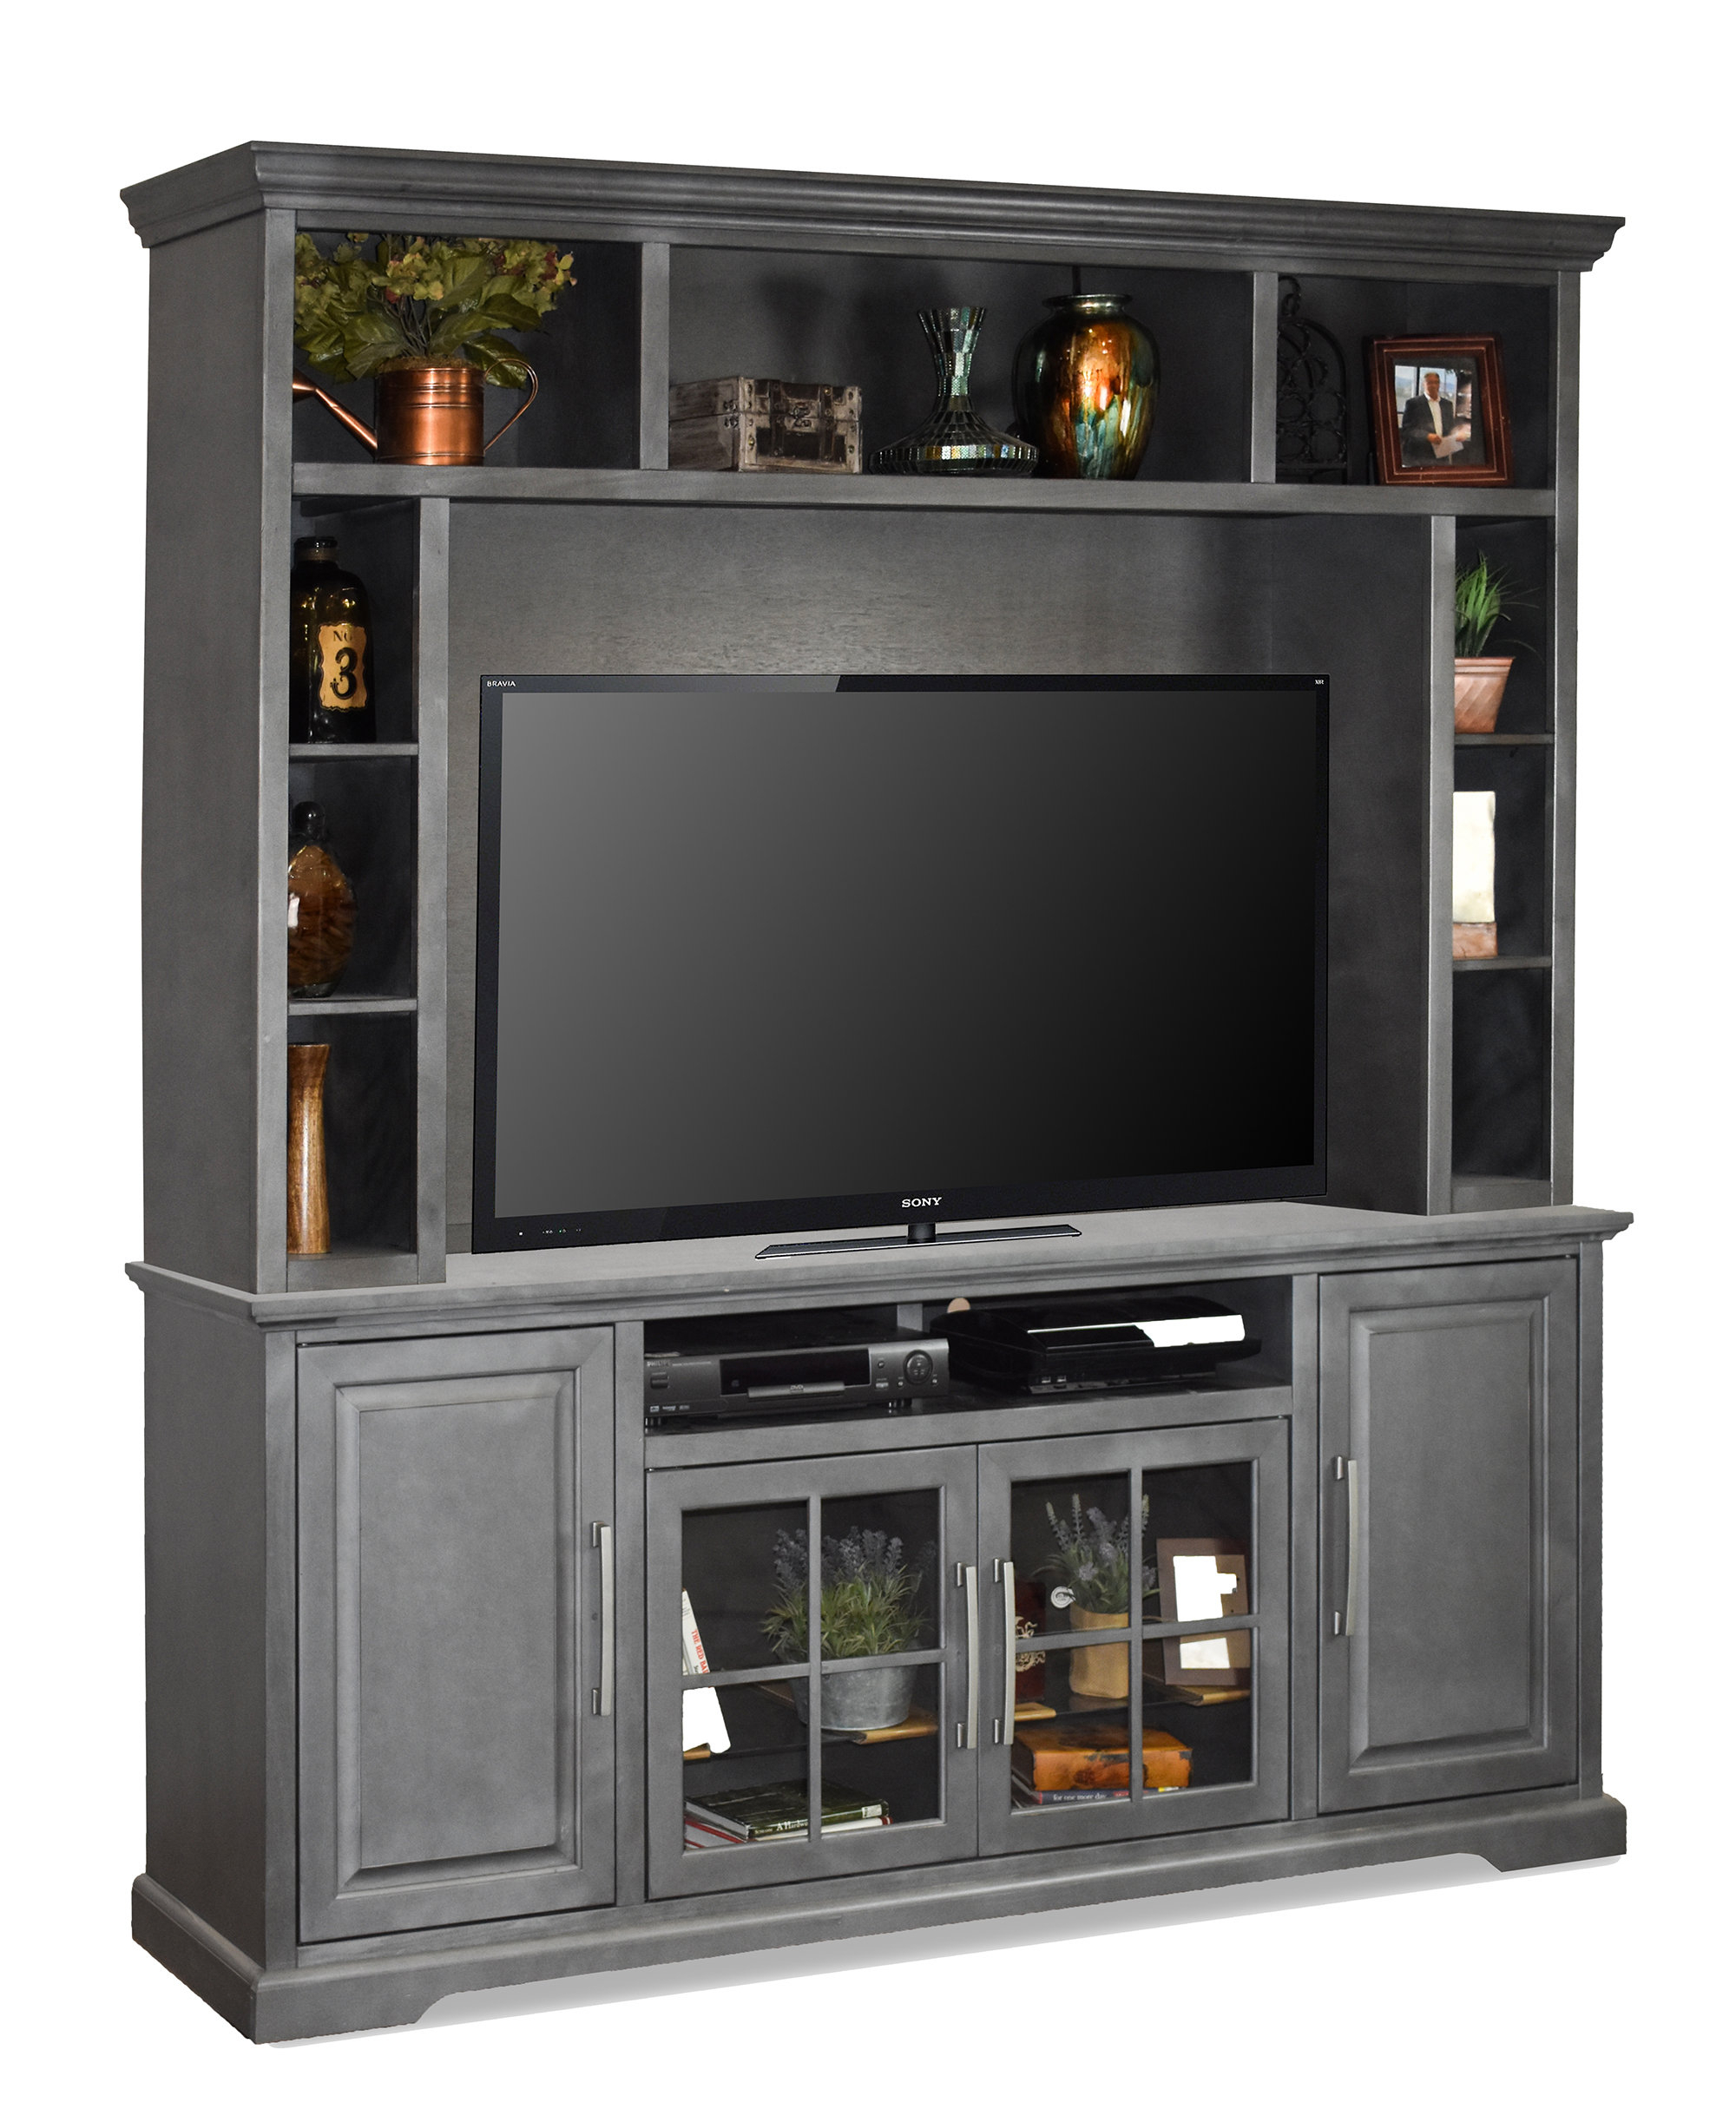 Tv Stands With Hutch You'll Love | Wayfair Regarding Kilian Grey 74 Inch Tv Stands (View 5 of 30)